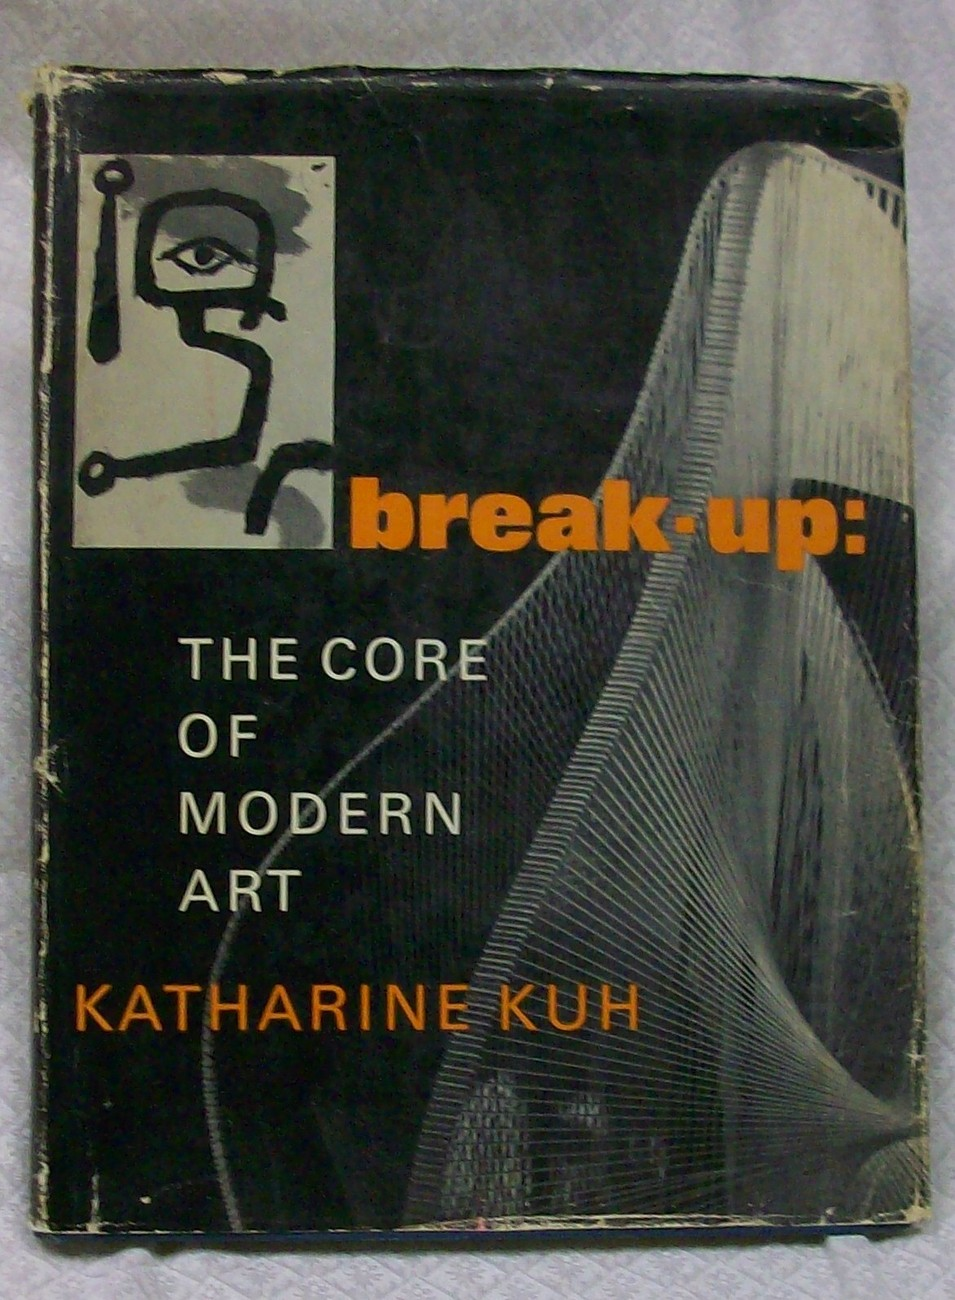 Break Up the Core of Modern Art by Katharine Kuh